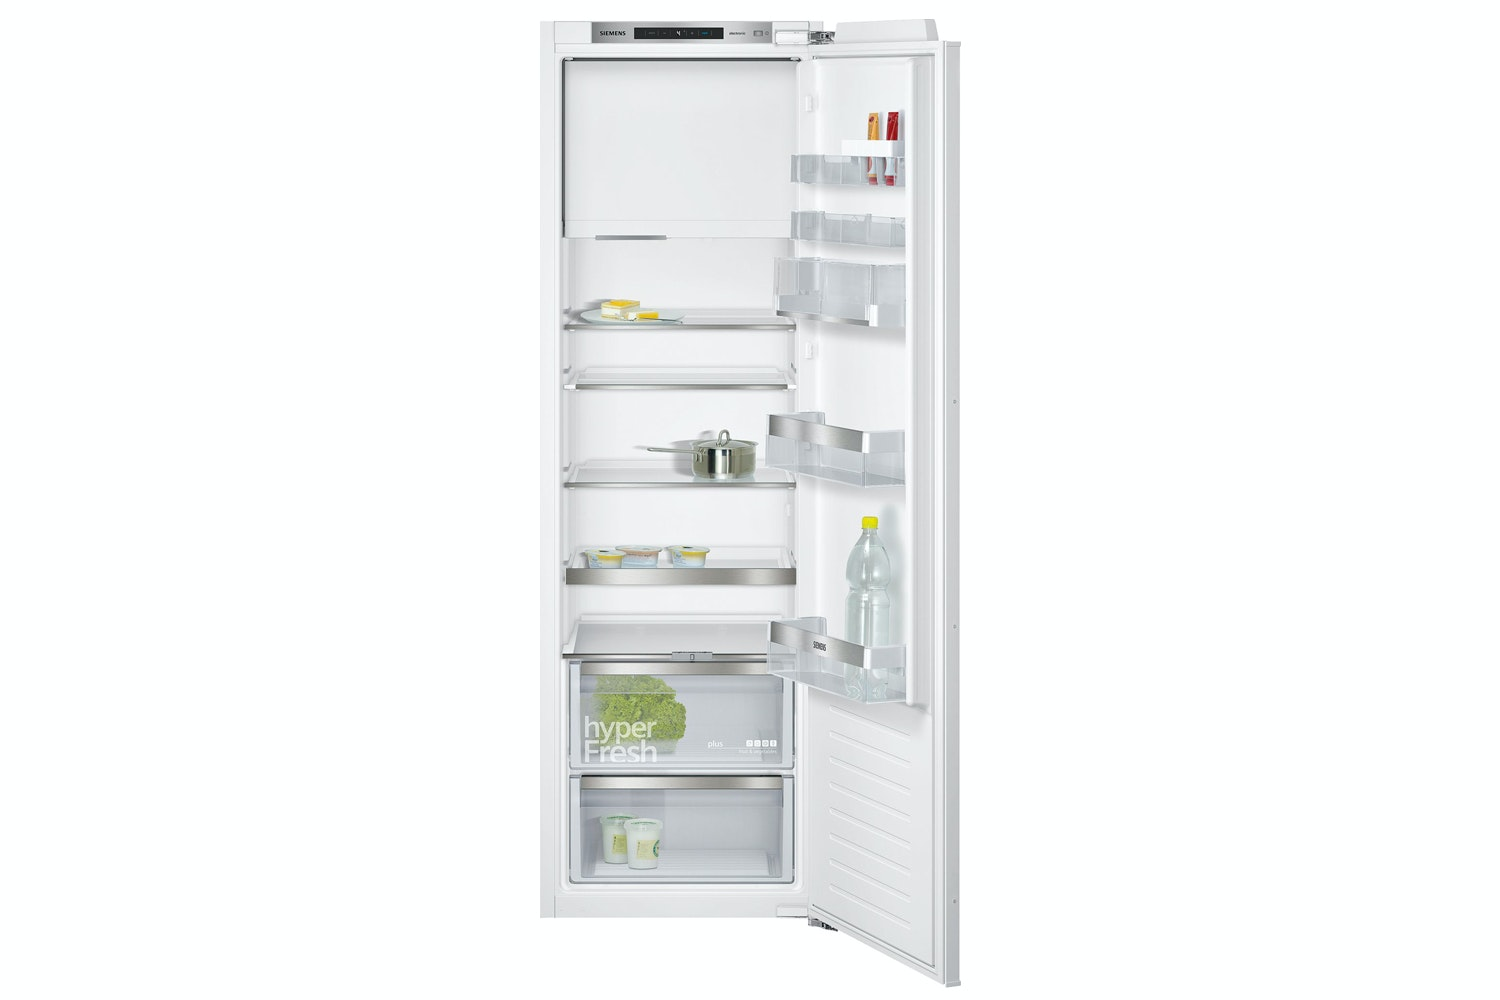 Siemens Built-in Fridge Freezer | KI82LAF30